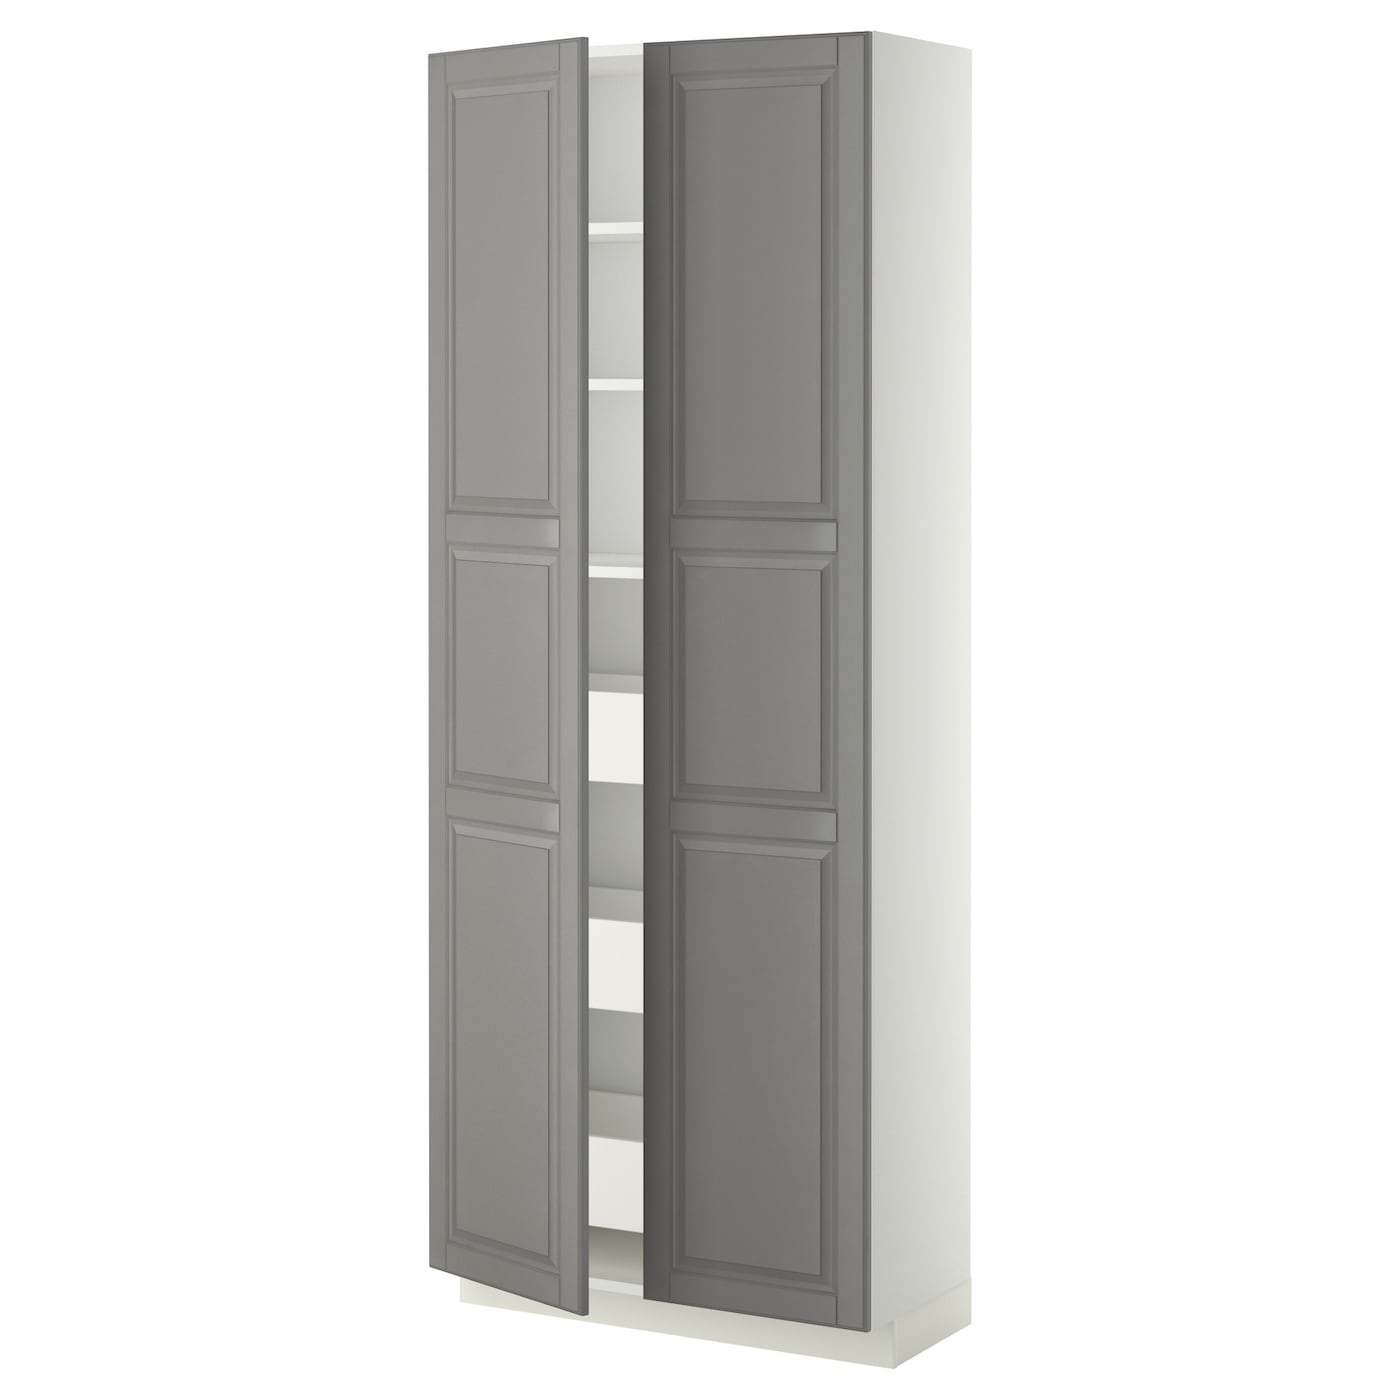 metod maximera lt haut tiroirs 2portes blanc bodbyn gris 80x37x200 cm ikea. Black Bedroom Furniture Sets. Home Design Ideas